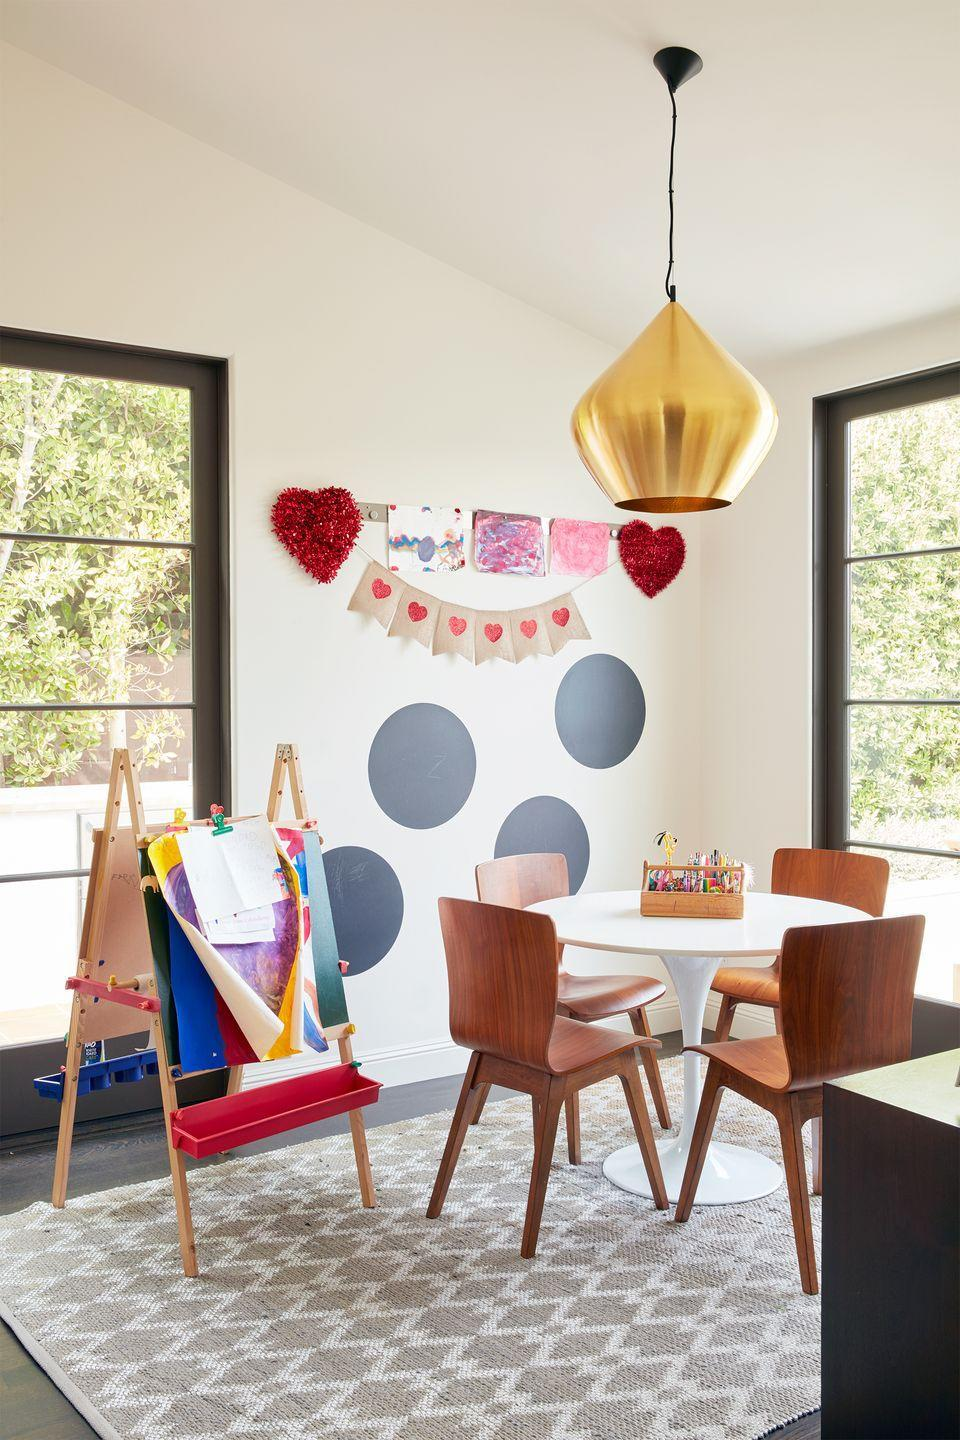 """<p>Kids need a place to let their imaginations soar, too. But they also need a designated place to organize all their markers, pens, paintbrushes, and papers, so make sure you invest in some items that keep it all in one place. An easel with built-in storage for pens, plus a <a href=""""https://www.containerstore.com/s/craft-hobby/artbin-double-deep-super-satchel/1d"""" rel=""""nofollow noopener"""" target=""""_blank"""" data-ylk=""""slk:portable carrier"""" class=""""link rapid-noclick-resp"""">portable carrier</a> to go on the table, and some hooks or a <a href=""""https://www.wayfair.com/Dotted-Line%E2%84%A2--Bambi-Craft-Wall-Mount-Thread-Store-X112670710-L2555-K~W001235852.html"""" rel=""""nofollow noopener"""" target=""""_blank"""" data-ylk=""""slk:wall unit"""" class=""""link rapid-noclick-resp"""">wall unit</a> to hang the finished products on display, as seen in this kid-friendly craft room by <a href=""""https://www.natashabaradaran.com/"""" rel=""""nofollow noopener"""" target=""""_blank"""" data-ylk=""""slk:Natasha Baradaran"""" class=""""link rapid-noclick-resp"""">Natasha Baradaran</a>, are all great ideas. </p>"""